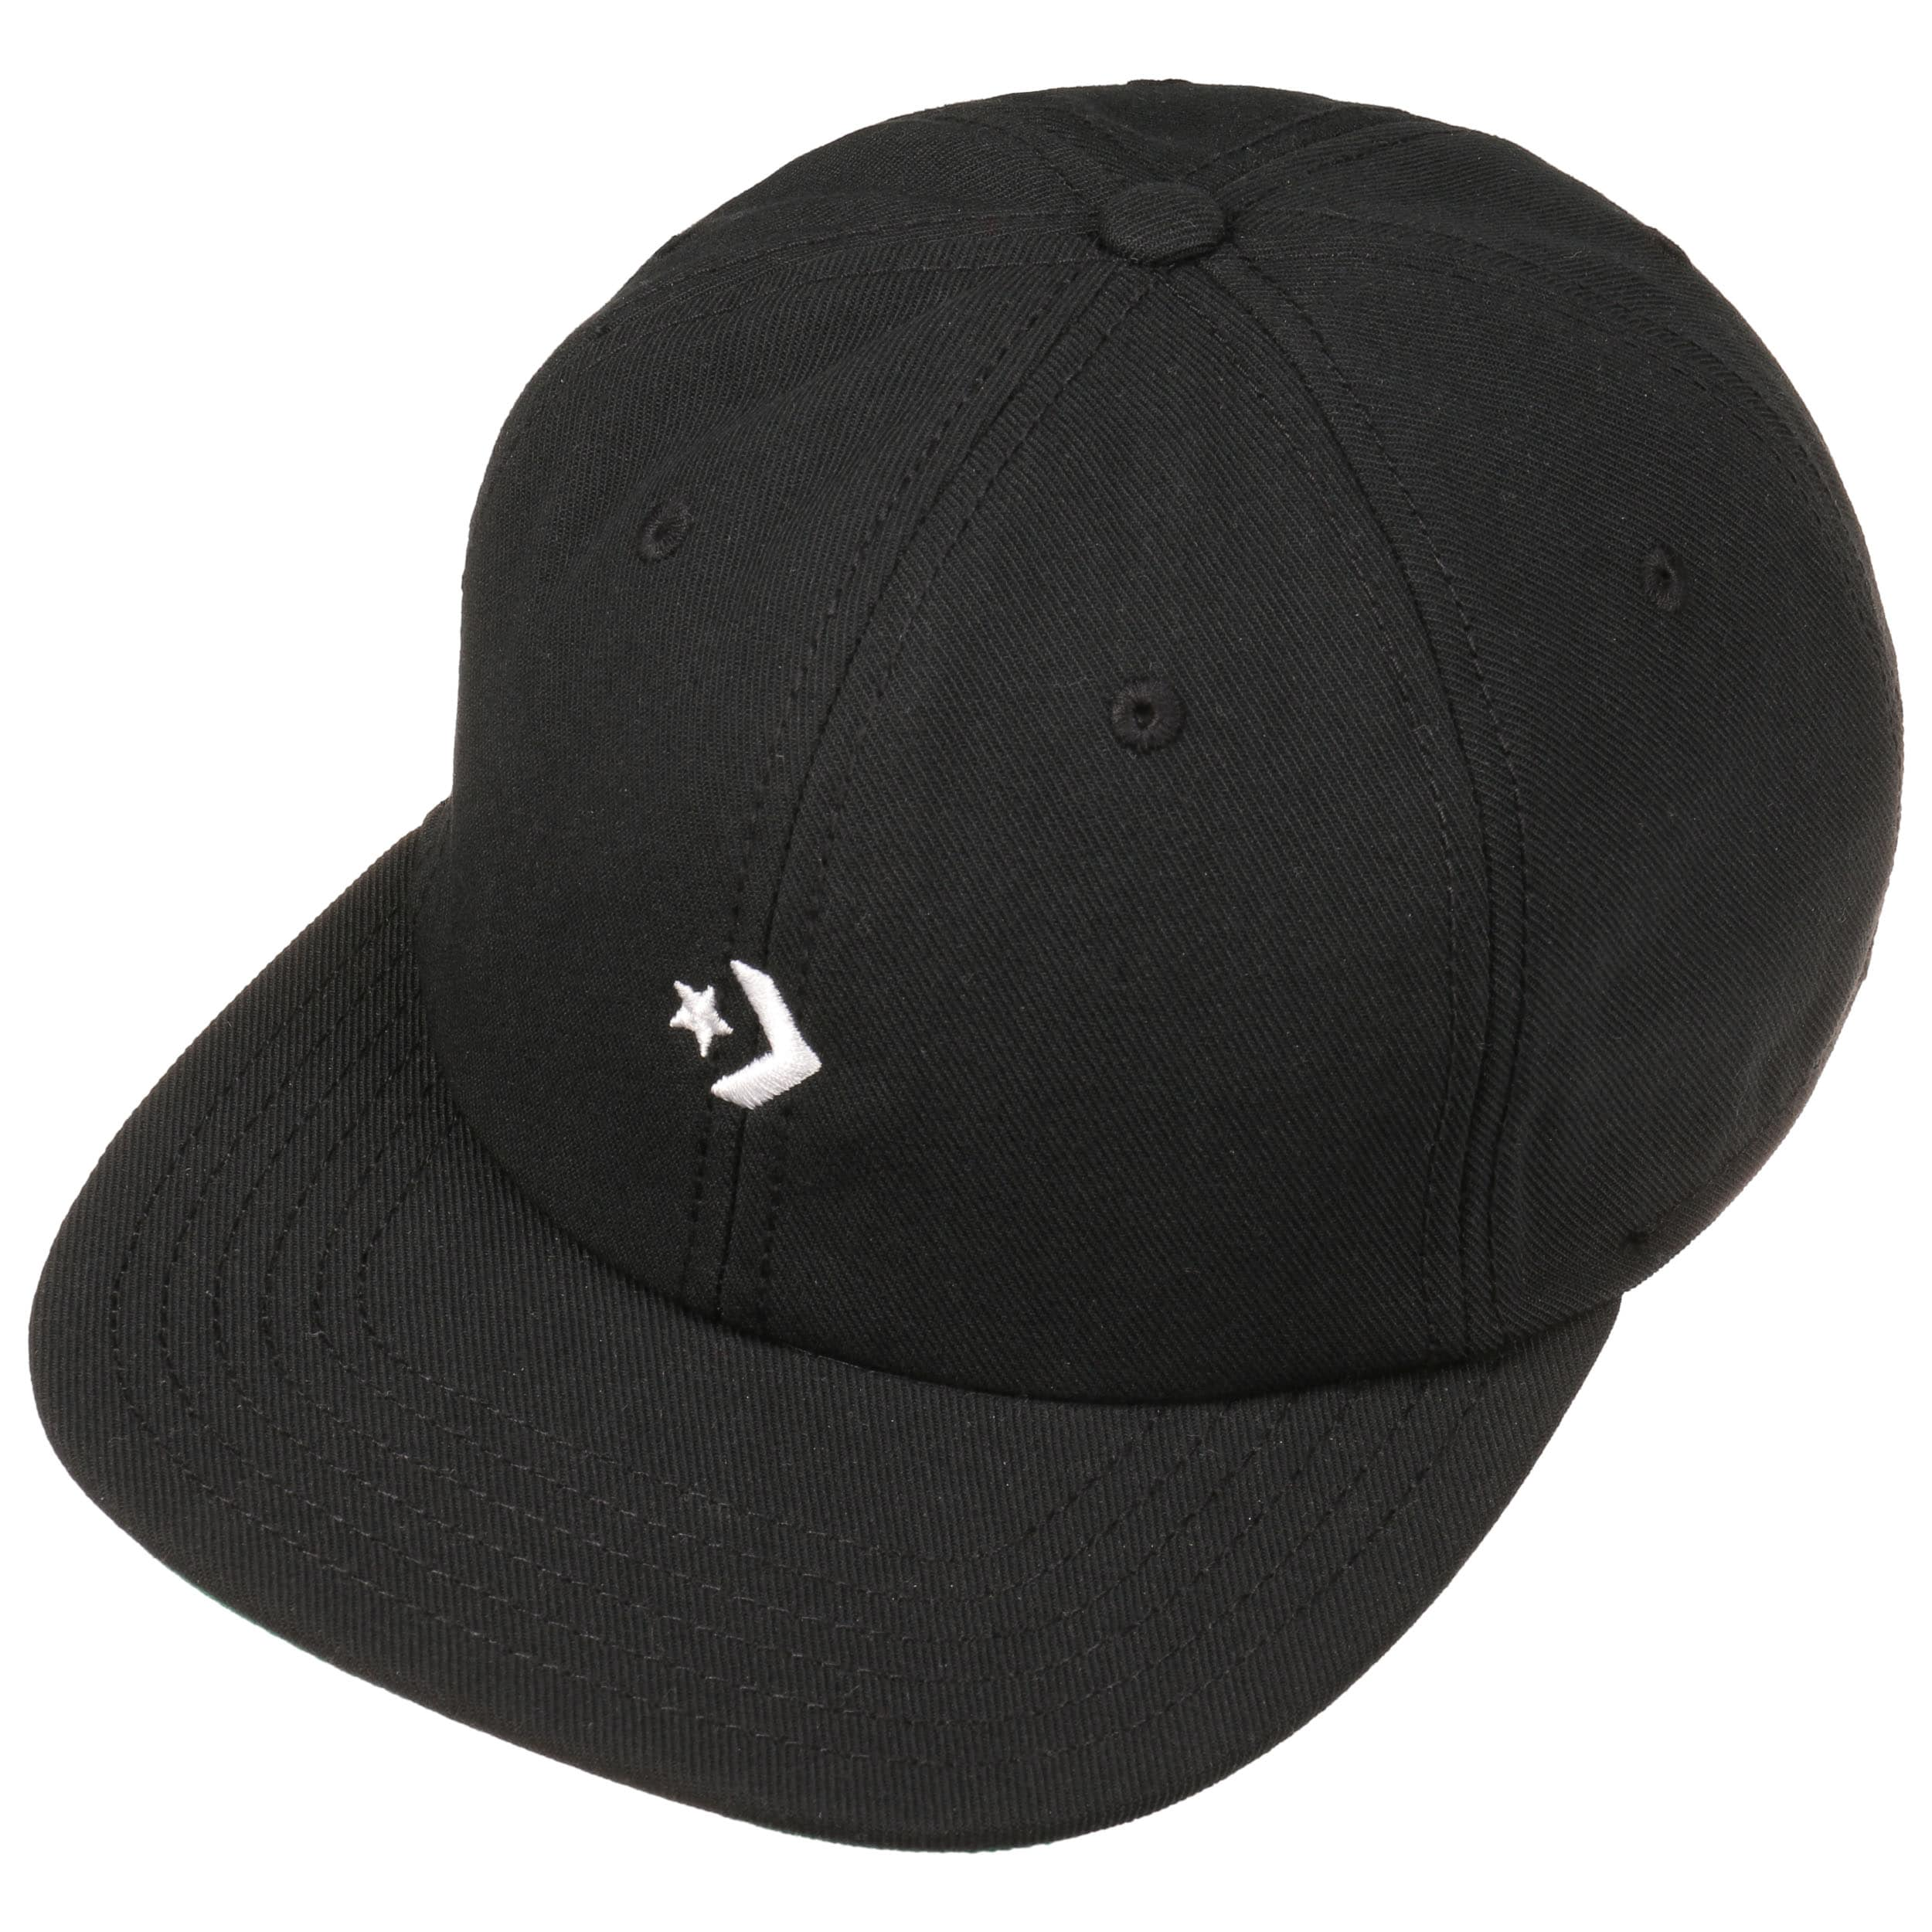 b844a2137bf ... Star Chev Fall Weight Cap by Converse - black 1 ...